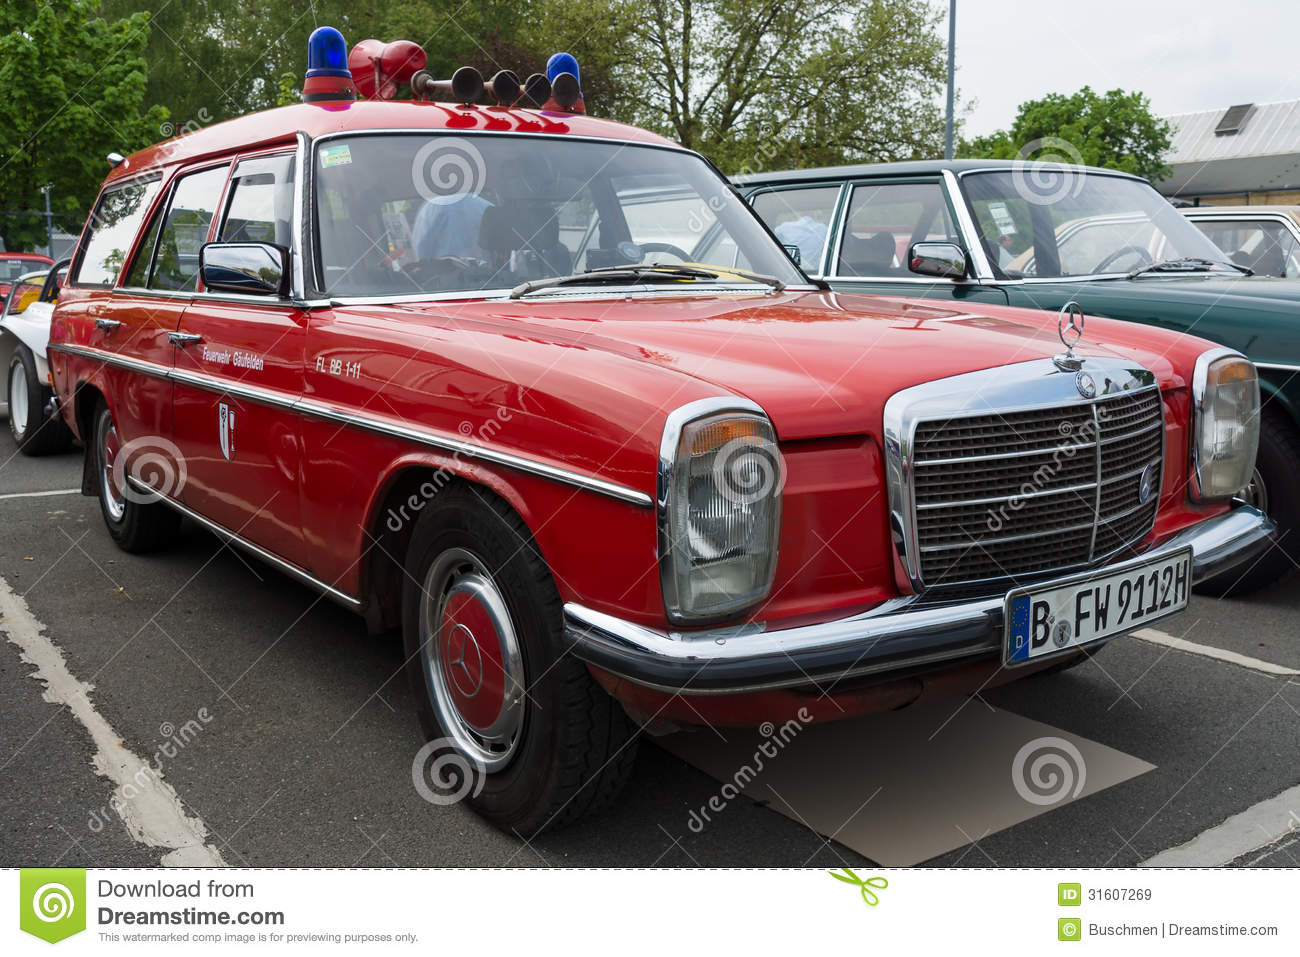 car fire service mercedes benz w114 station wagon editorial stock image image 31607269. Black Bedroom Furniture Sets. Home Design Ideas